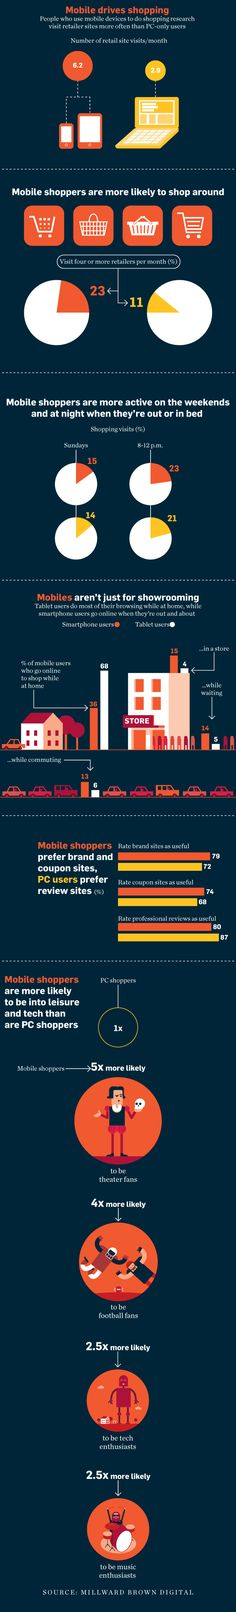 Mobile vs. PC shopping inforgraphic  Spotted this on Adweek, great insights